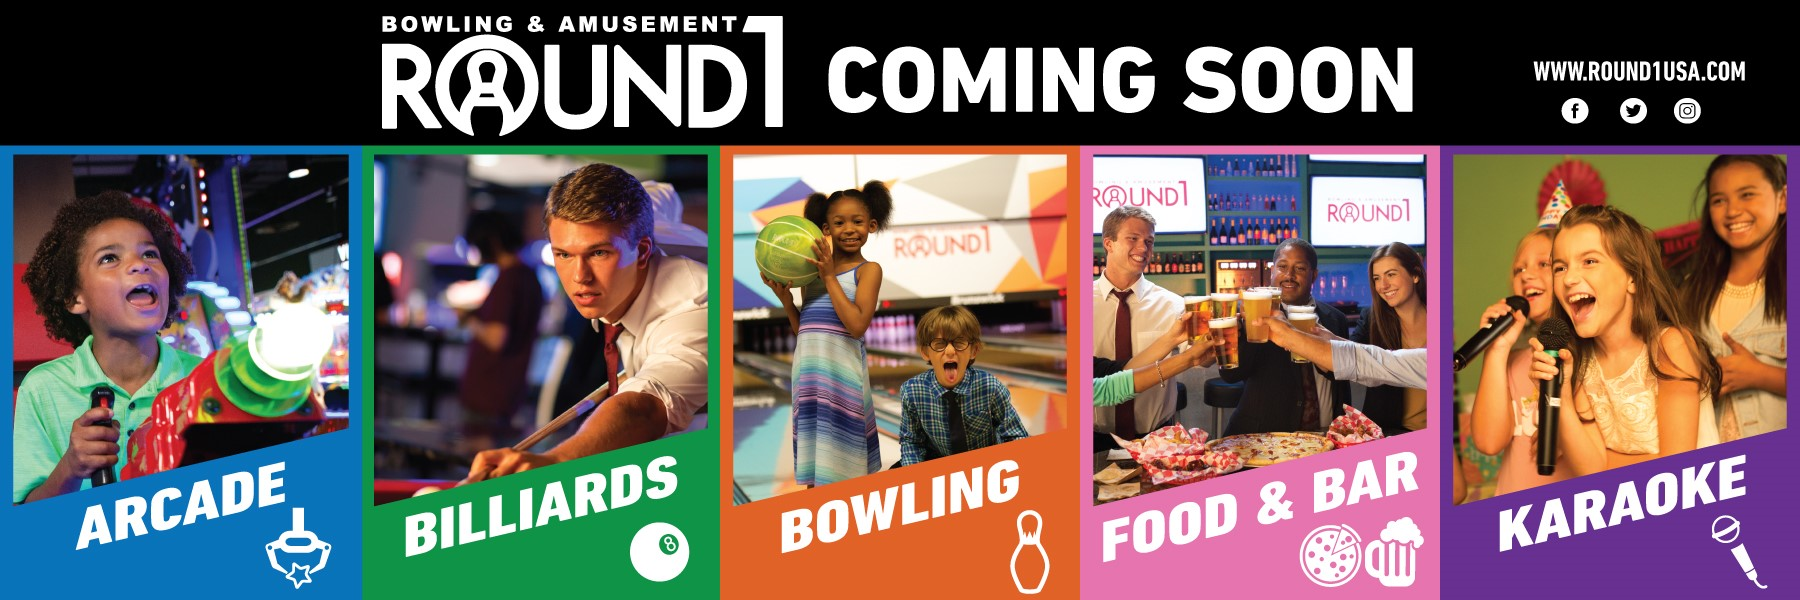 Round 1 Coming to Holyoke Mall